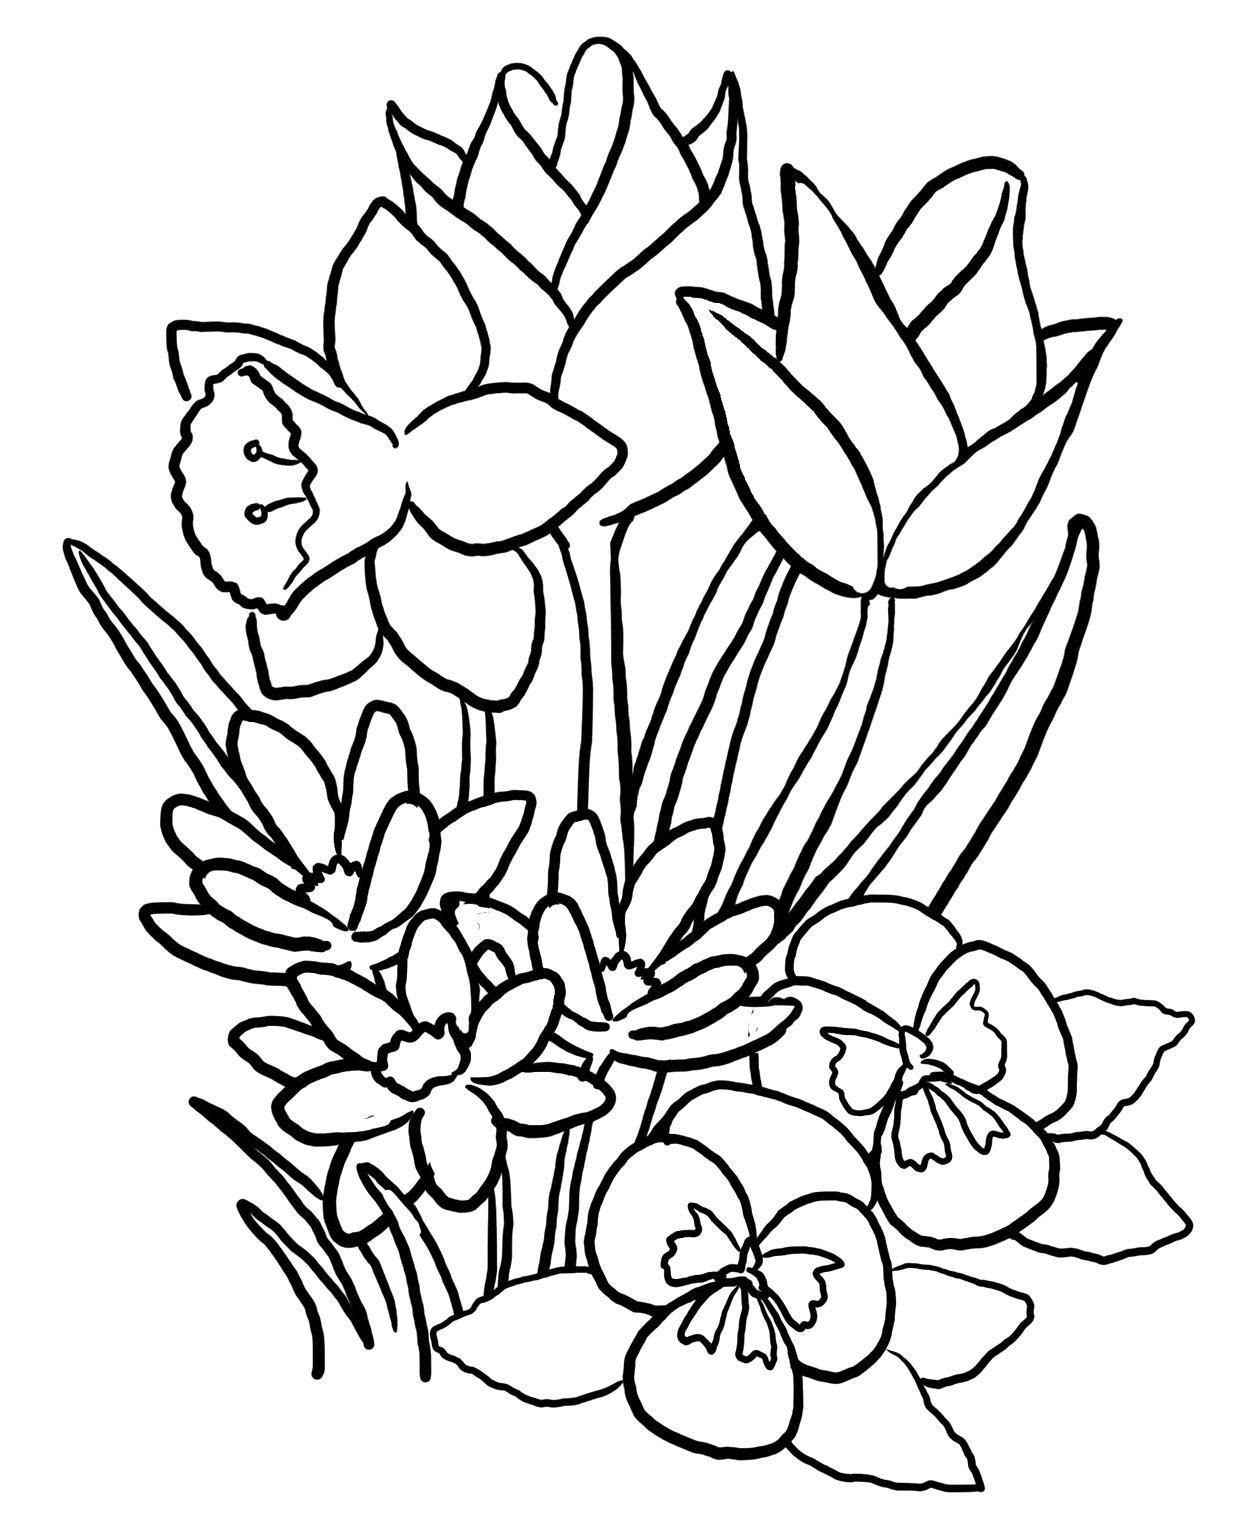 730 Coloring Pages Flowers And Animals For Free